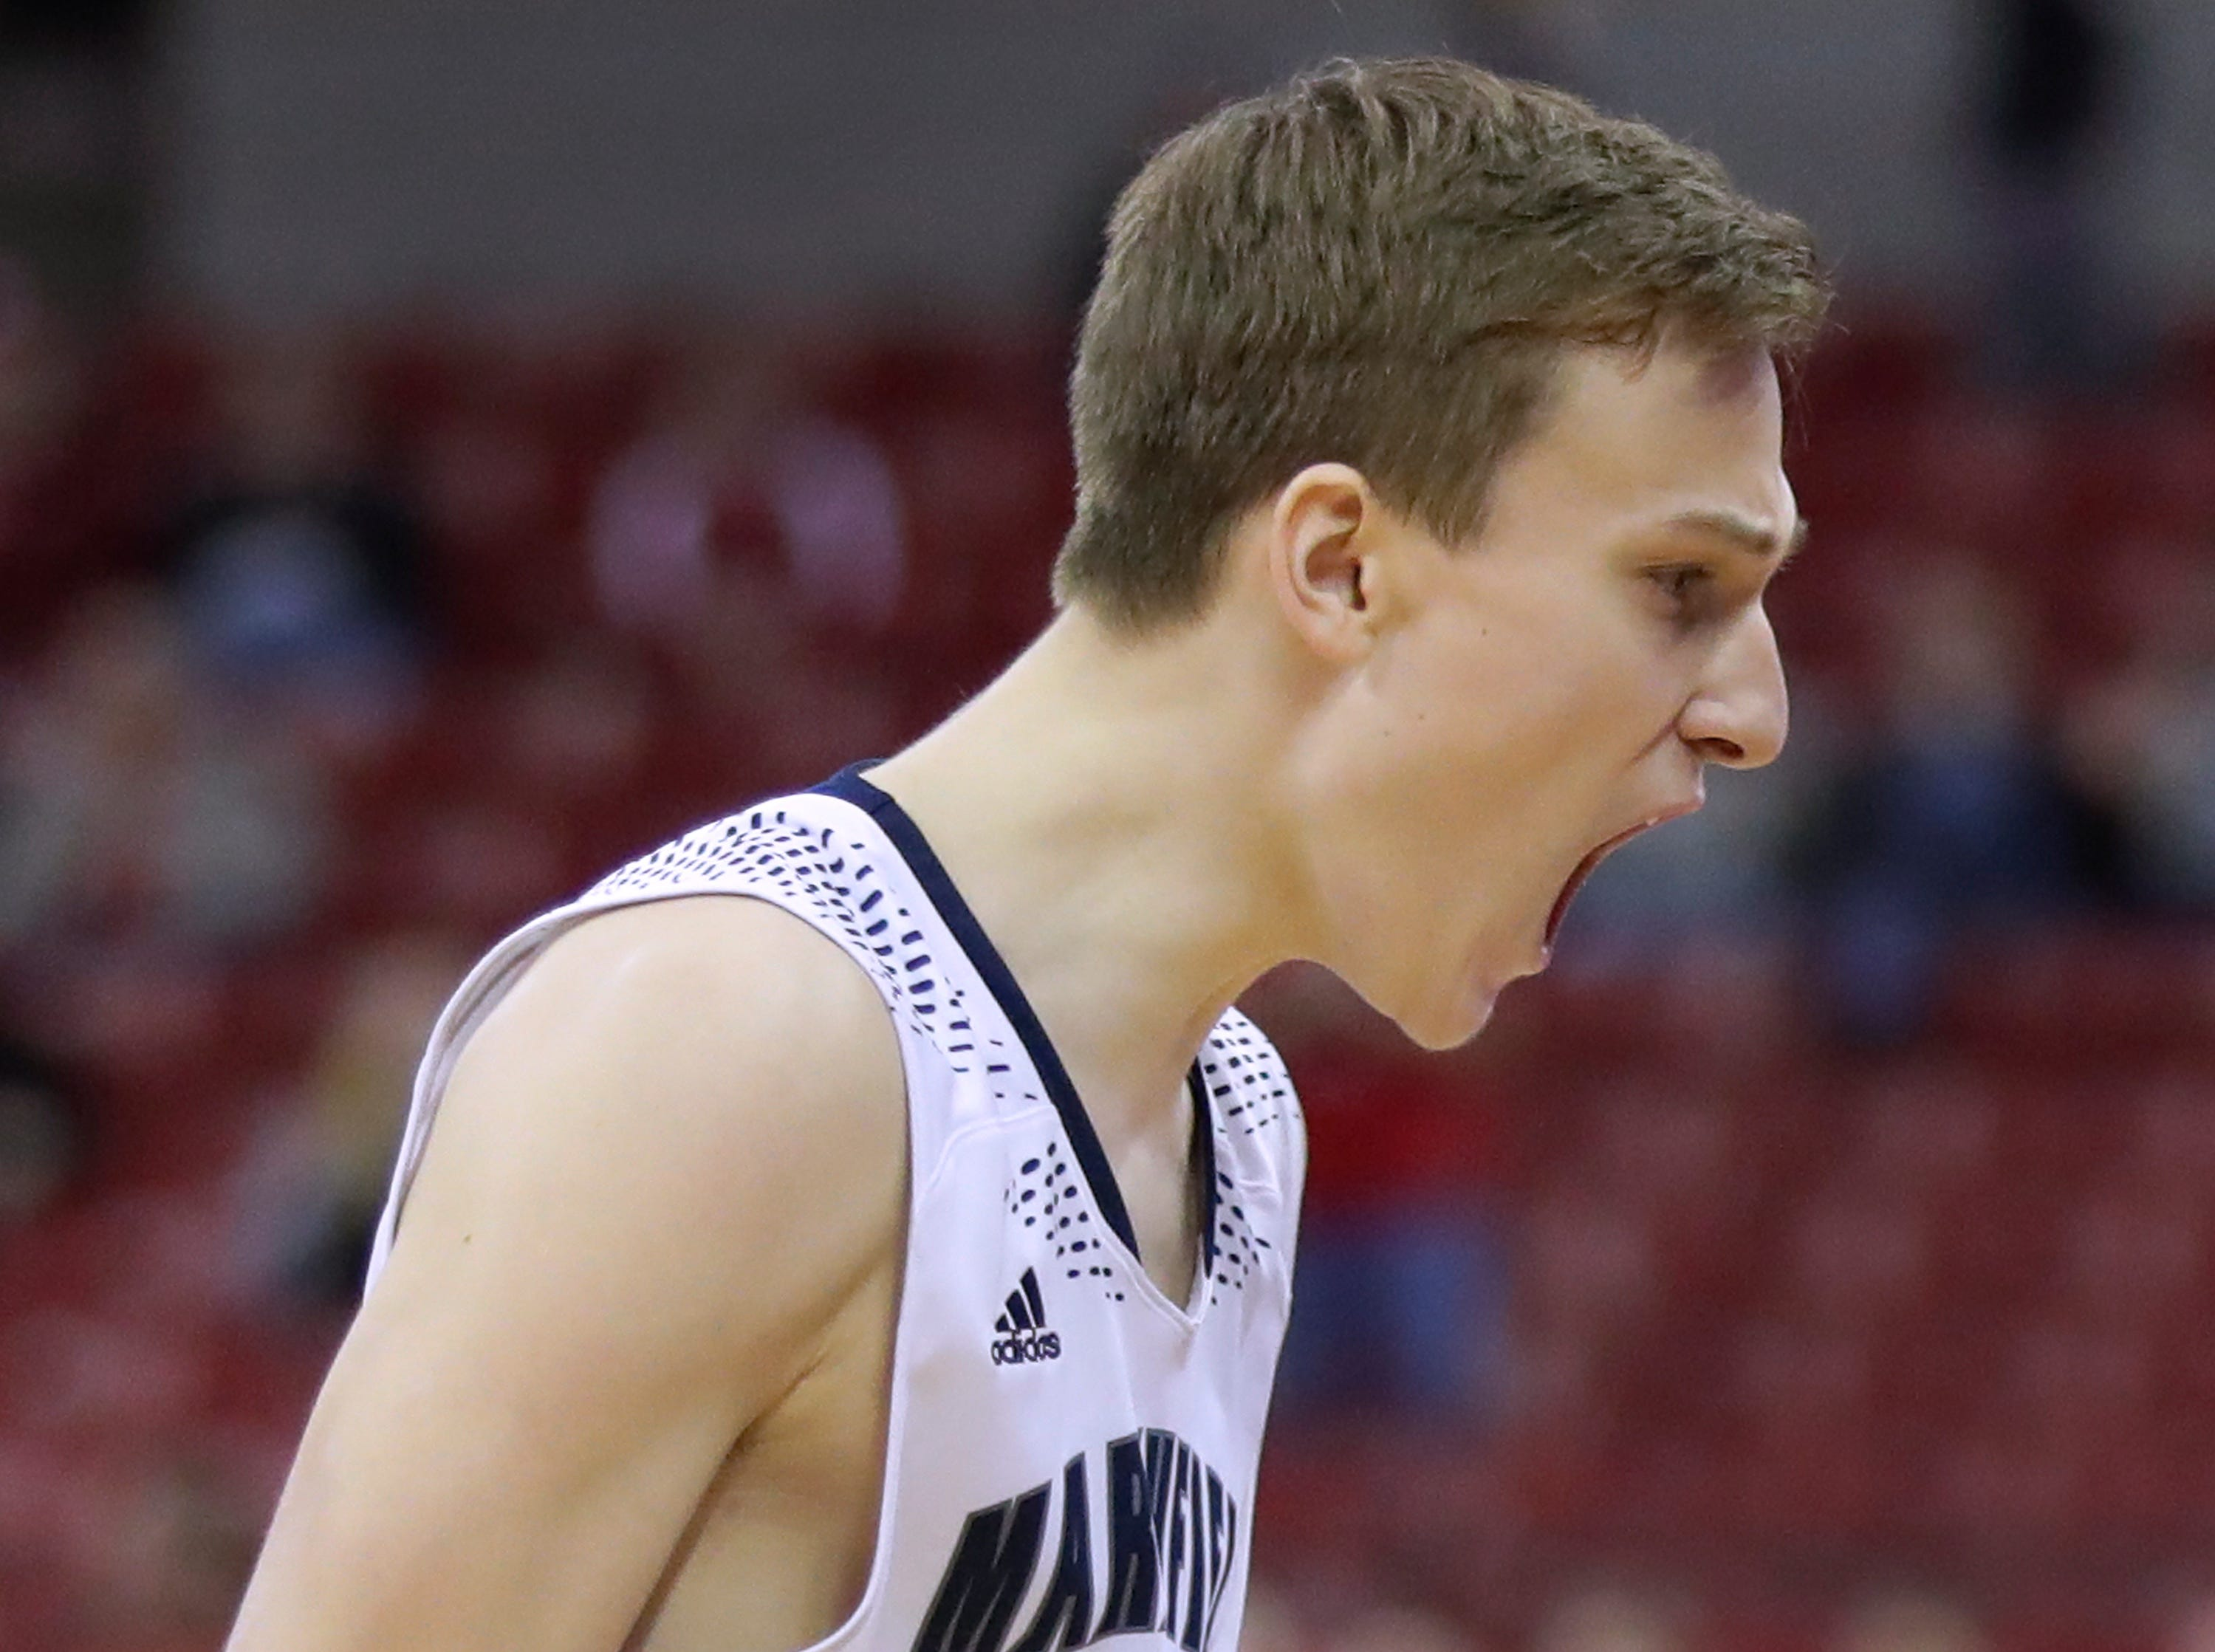 Columbus Catholic High School's #21 Tom Nystrom reacts after shooting a game winning three-pointeer in the closing seconds against Bangor High School during their WIAA Division 5 boys basketball state semifinal on Friday, March 15, 2019, at the Kohl Center in Madison, Wis. Clumbus defeated Bangor 69 to 66.Wm. Glasheen/USA TODAY NETWORK-Wisconsin.